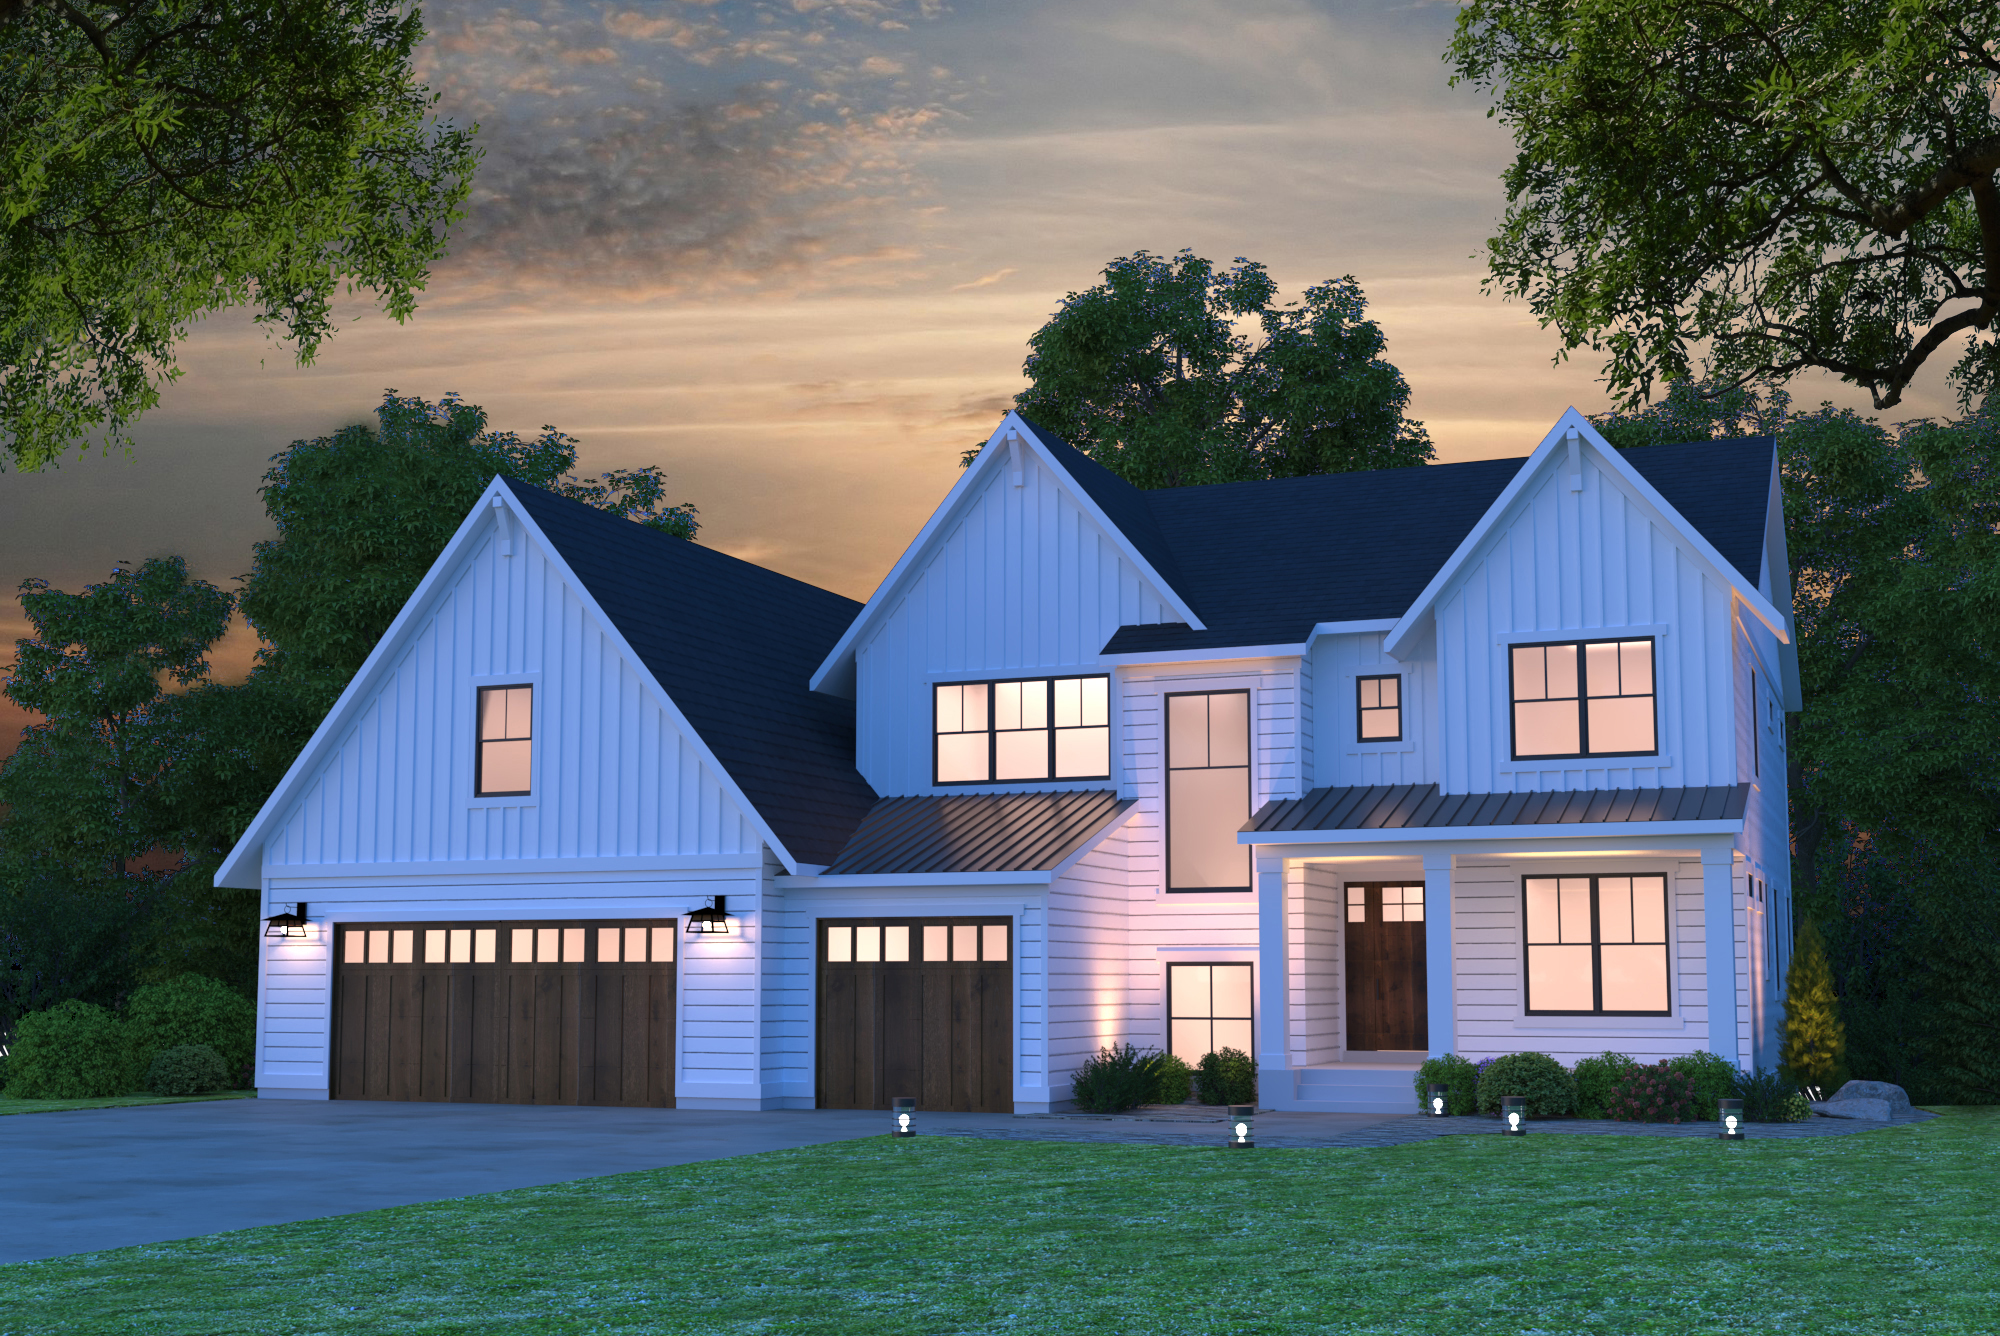 Home Plan Color Rendering Front at Night